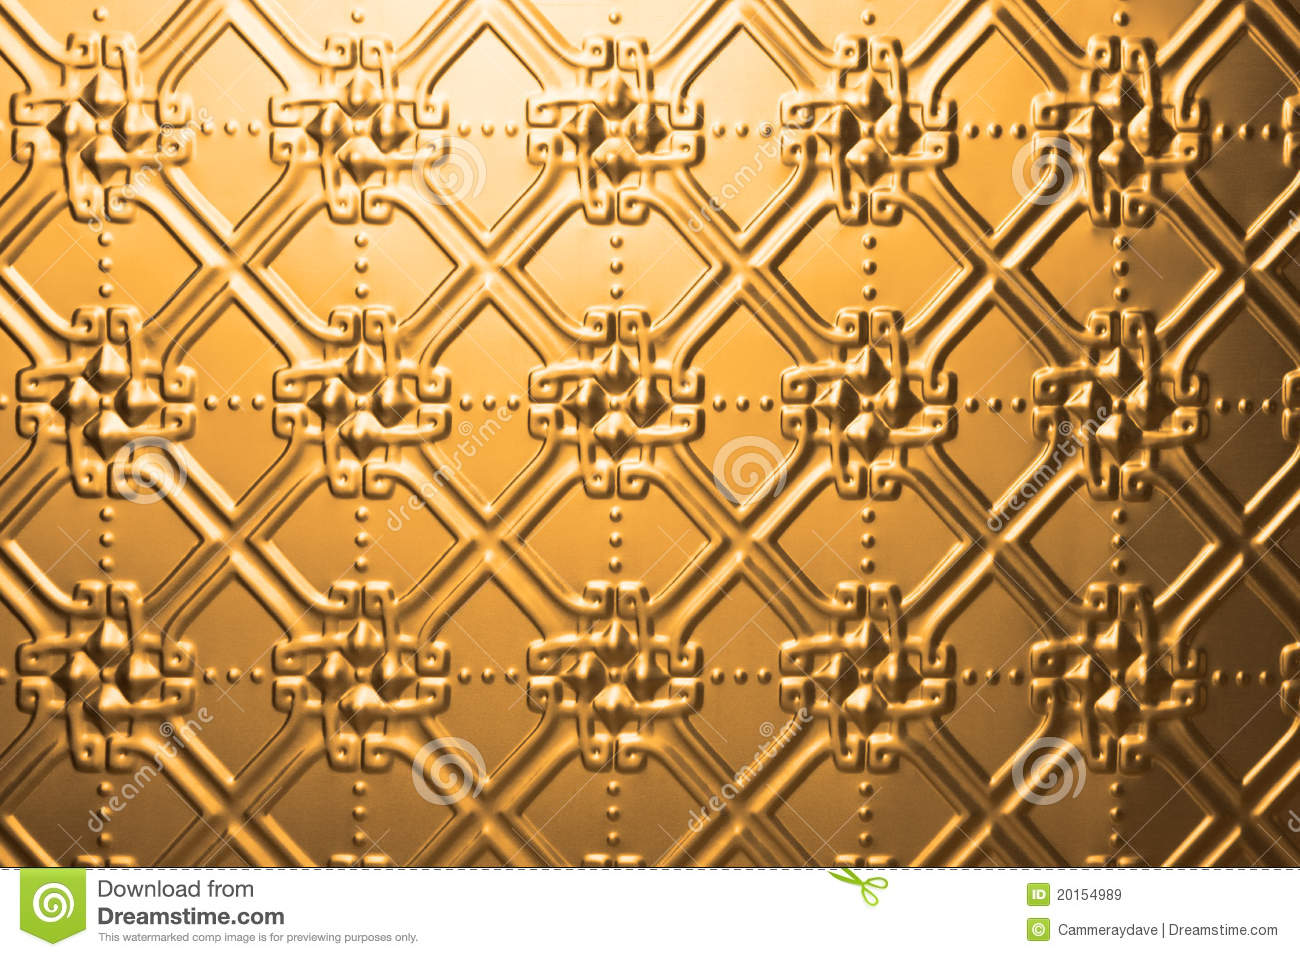 Girly Background Royalty Free Stock Photo: Metal Gold Background Stock Image. Image Of Fancy, Copper